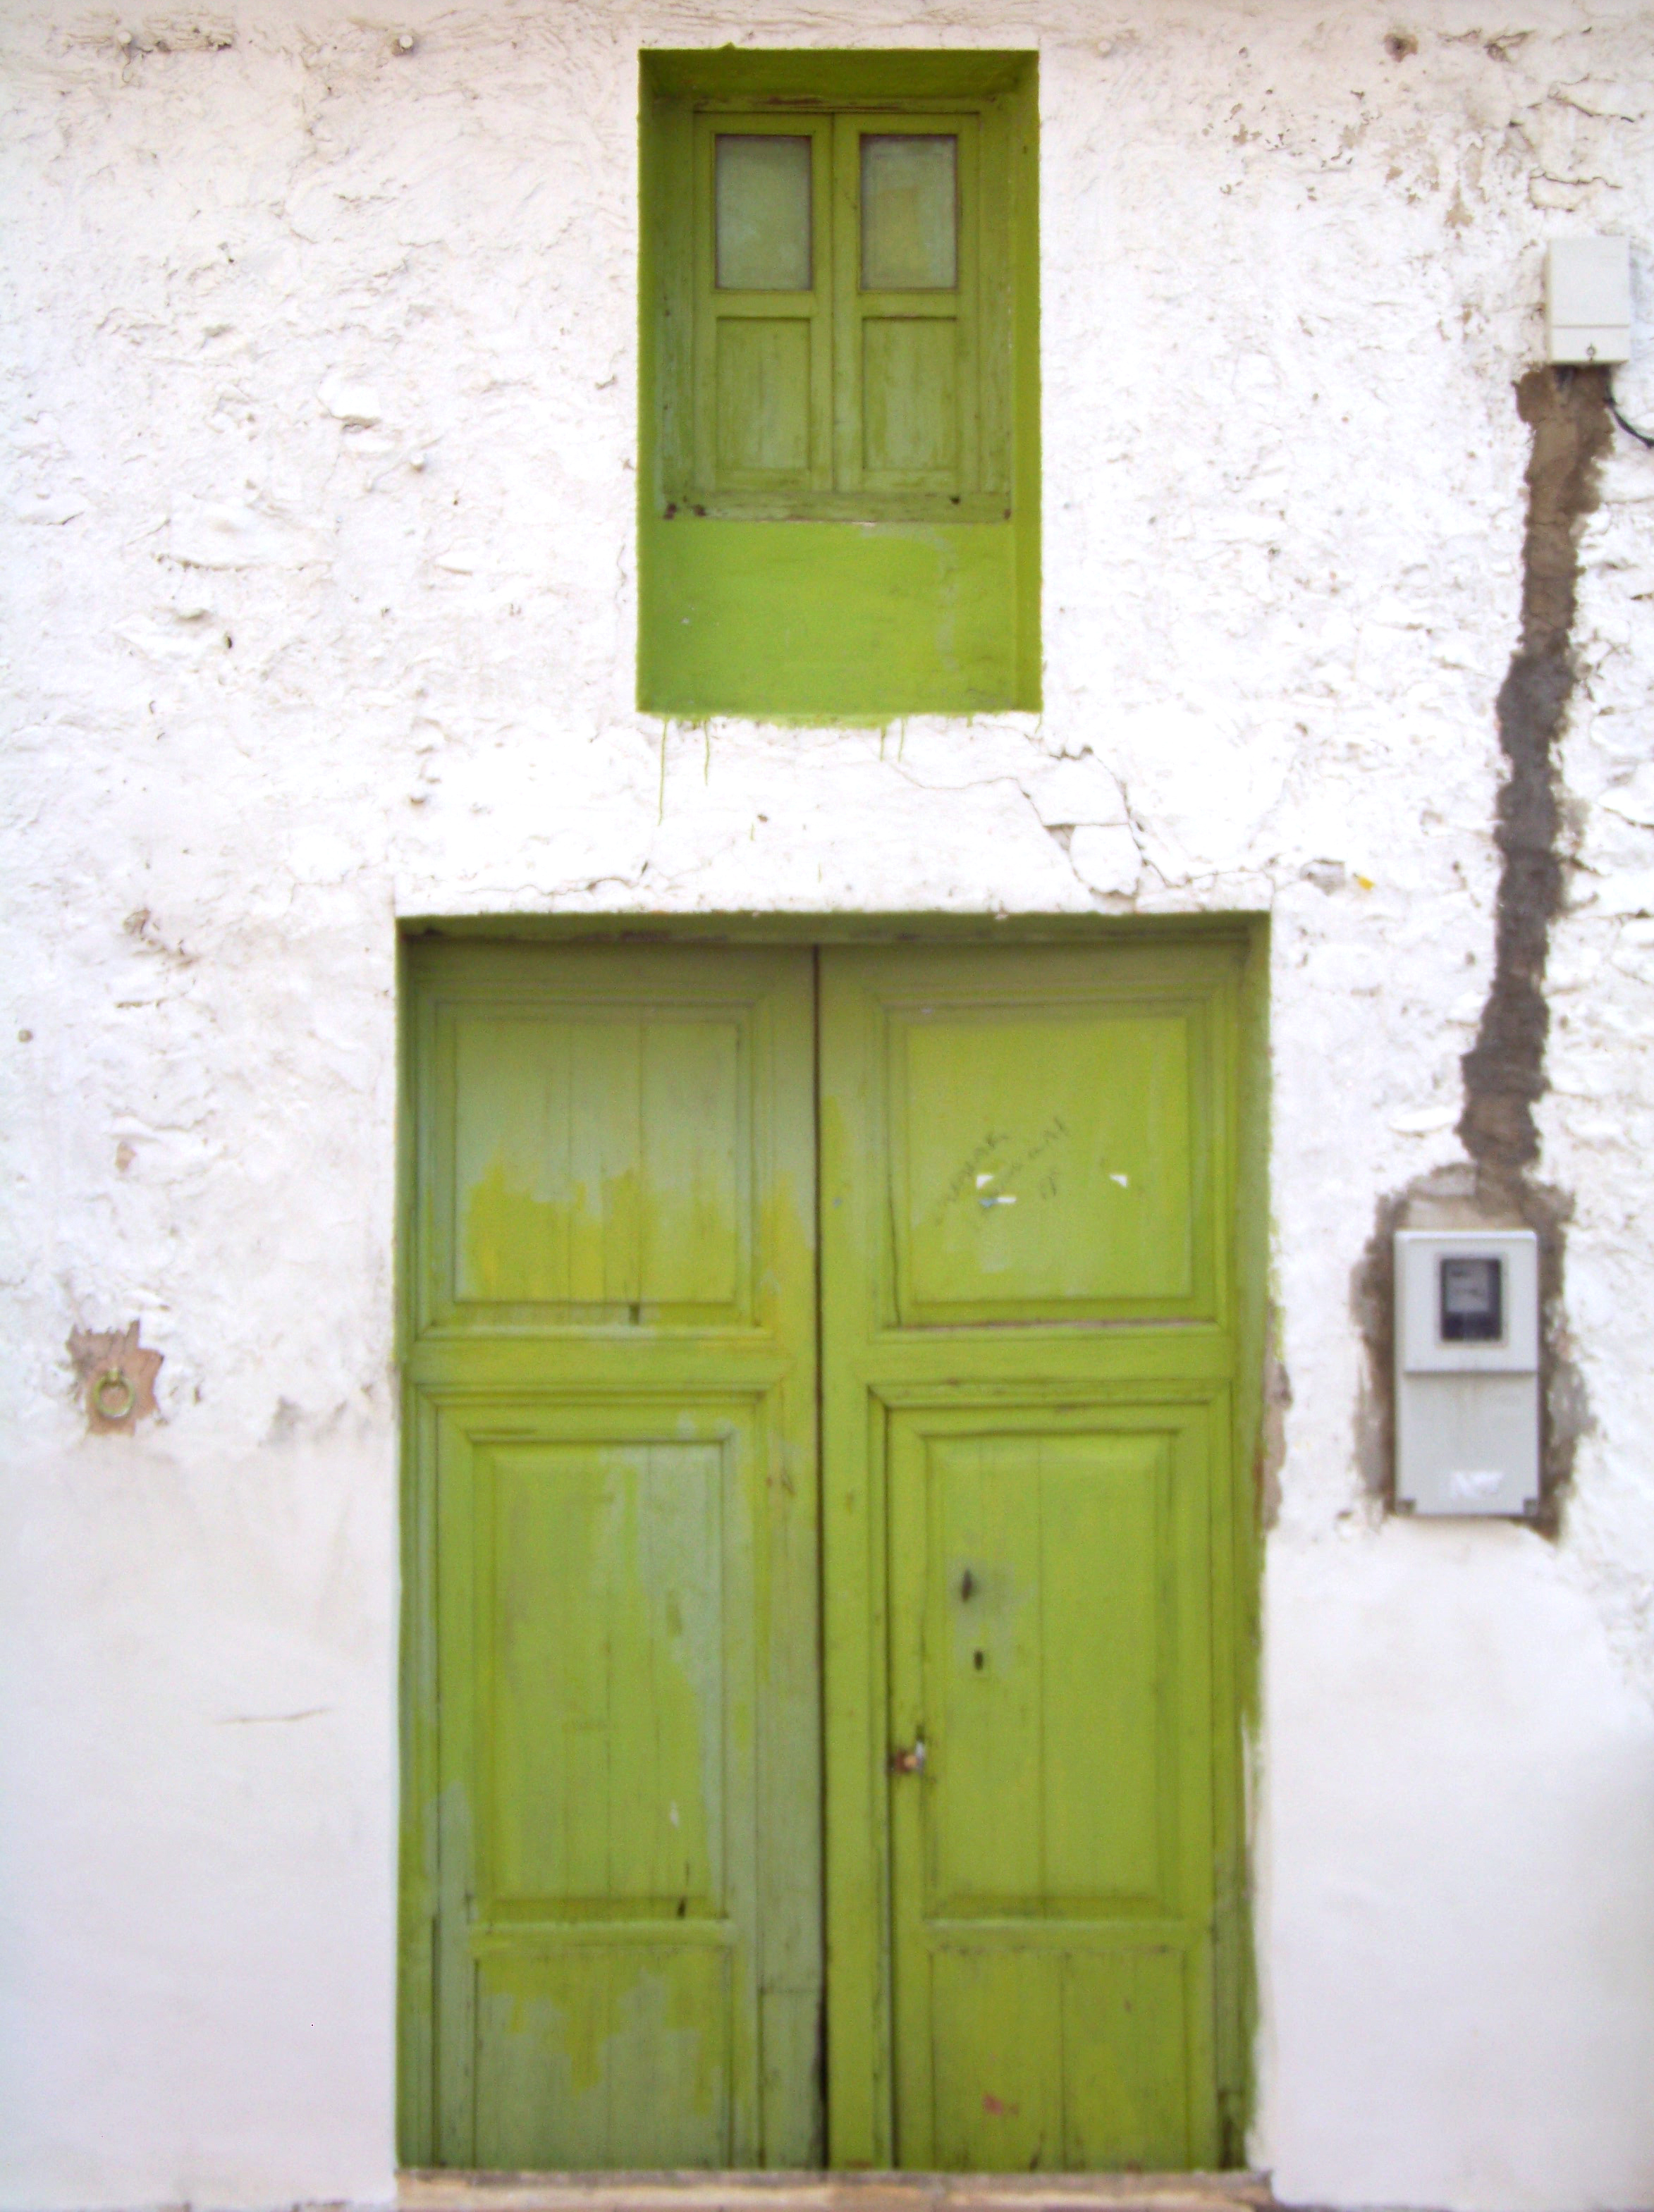 Green Door, Abandoned, Door, Faded, Green, HQ Photo